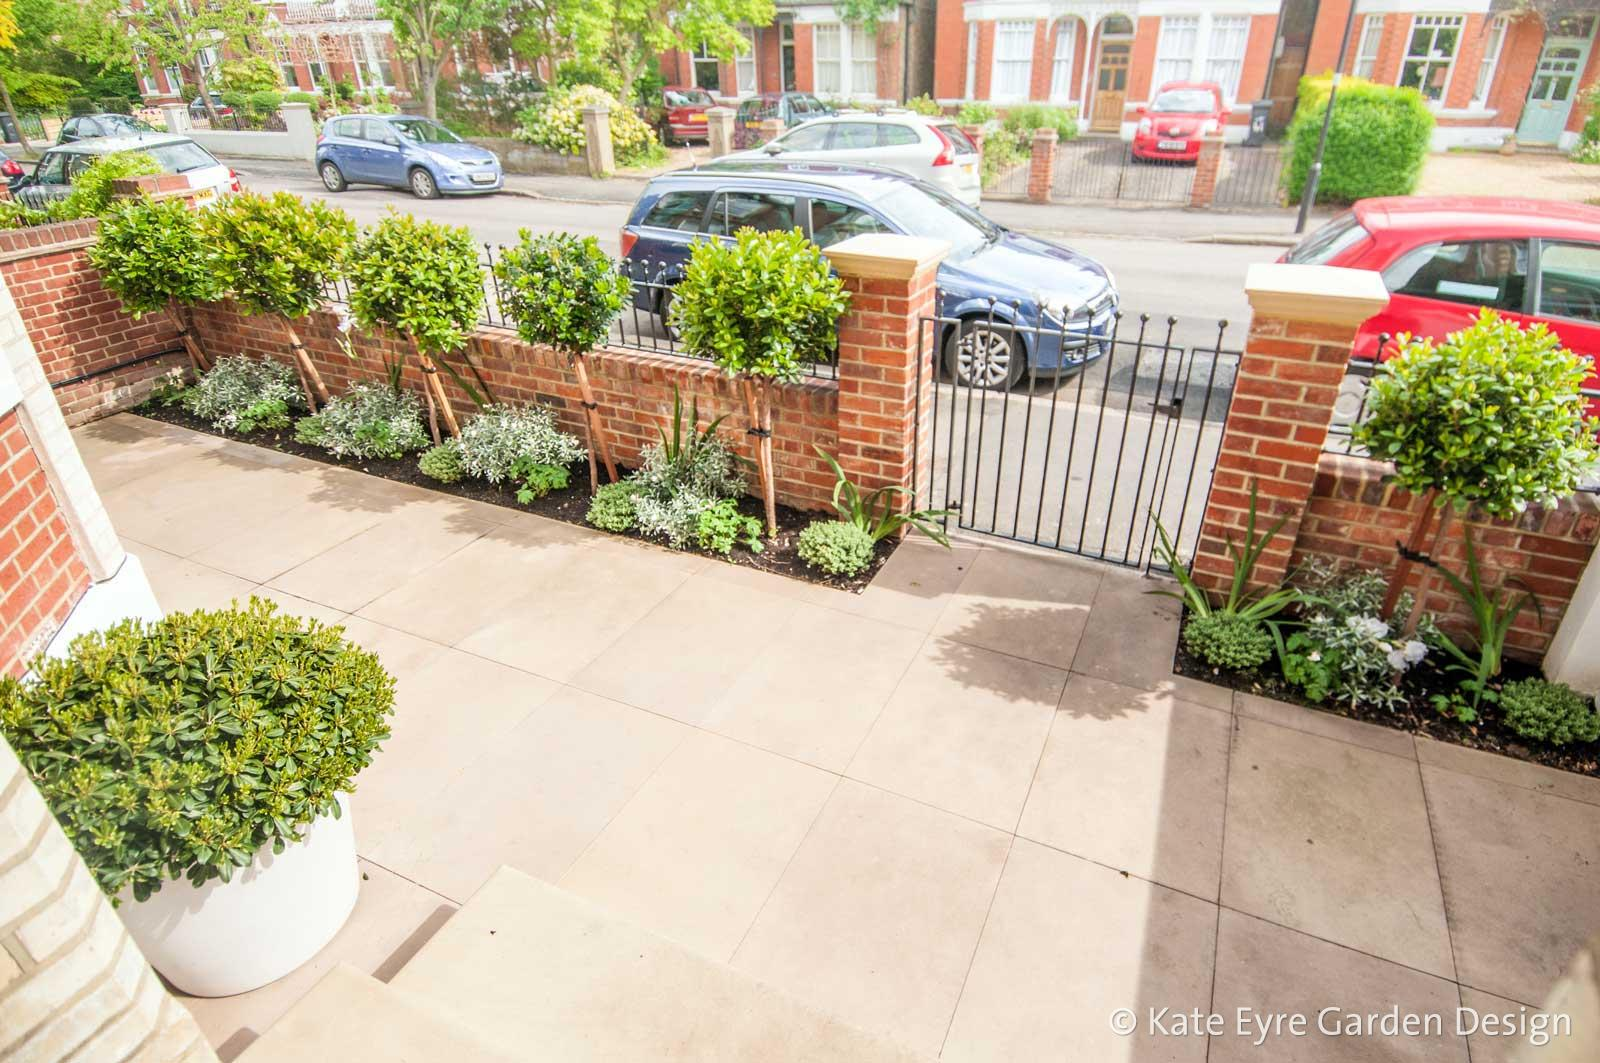 Front garden design in Idmiston Road, London, 2